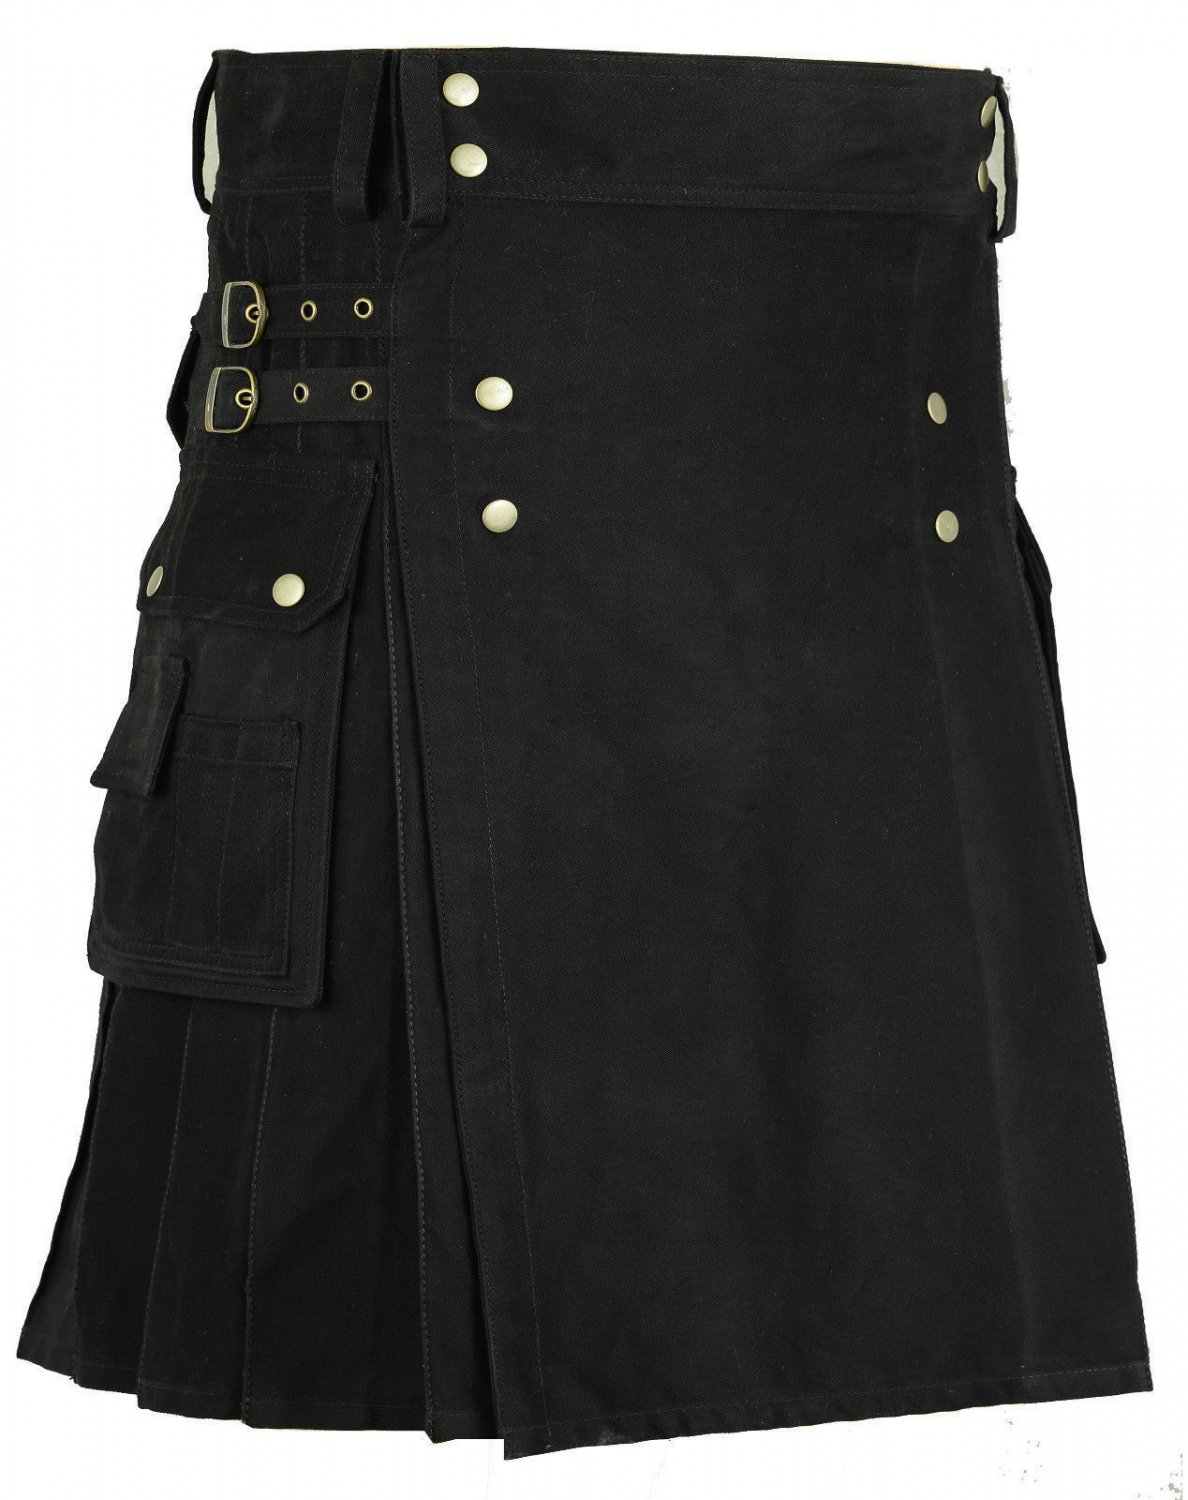 Size 38 New Scottish Cotton Kilt Deluxe Goth Outdoor Utility Kilts Highland Skirt